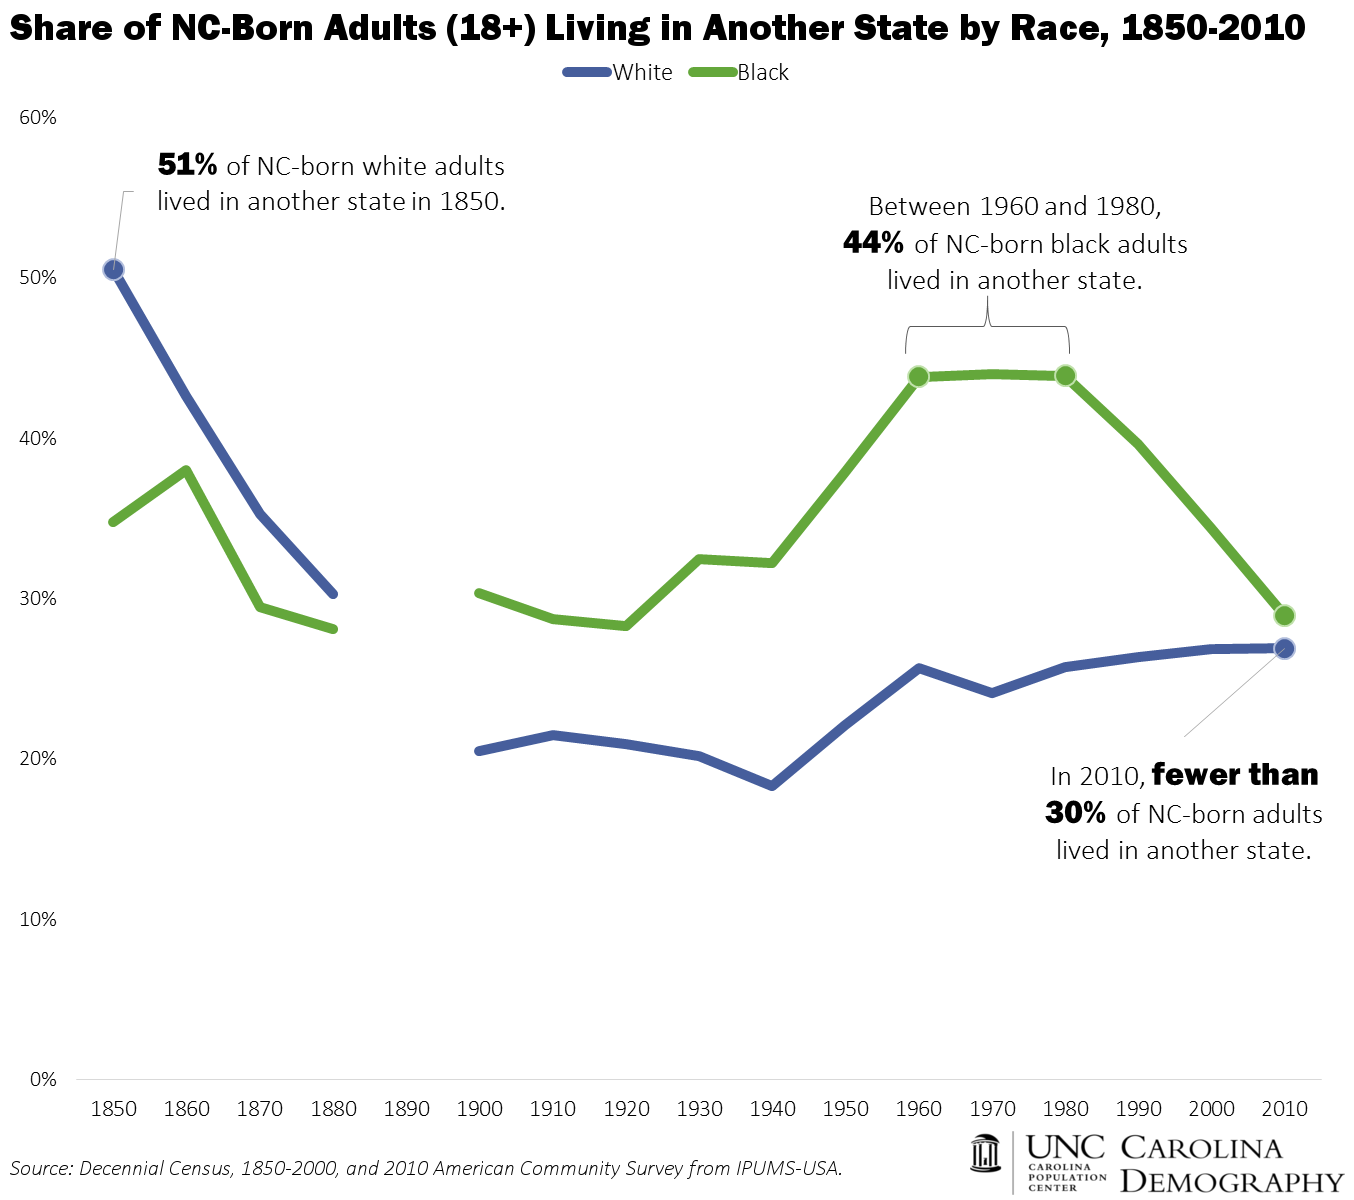 NC Born Living in Another State by Race 1850-2010